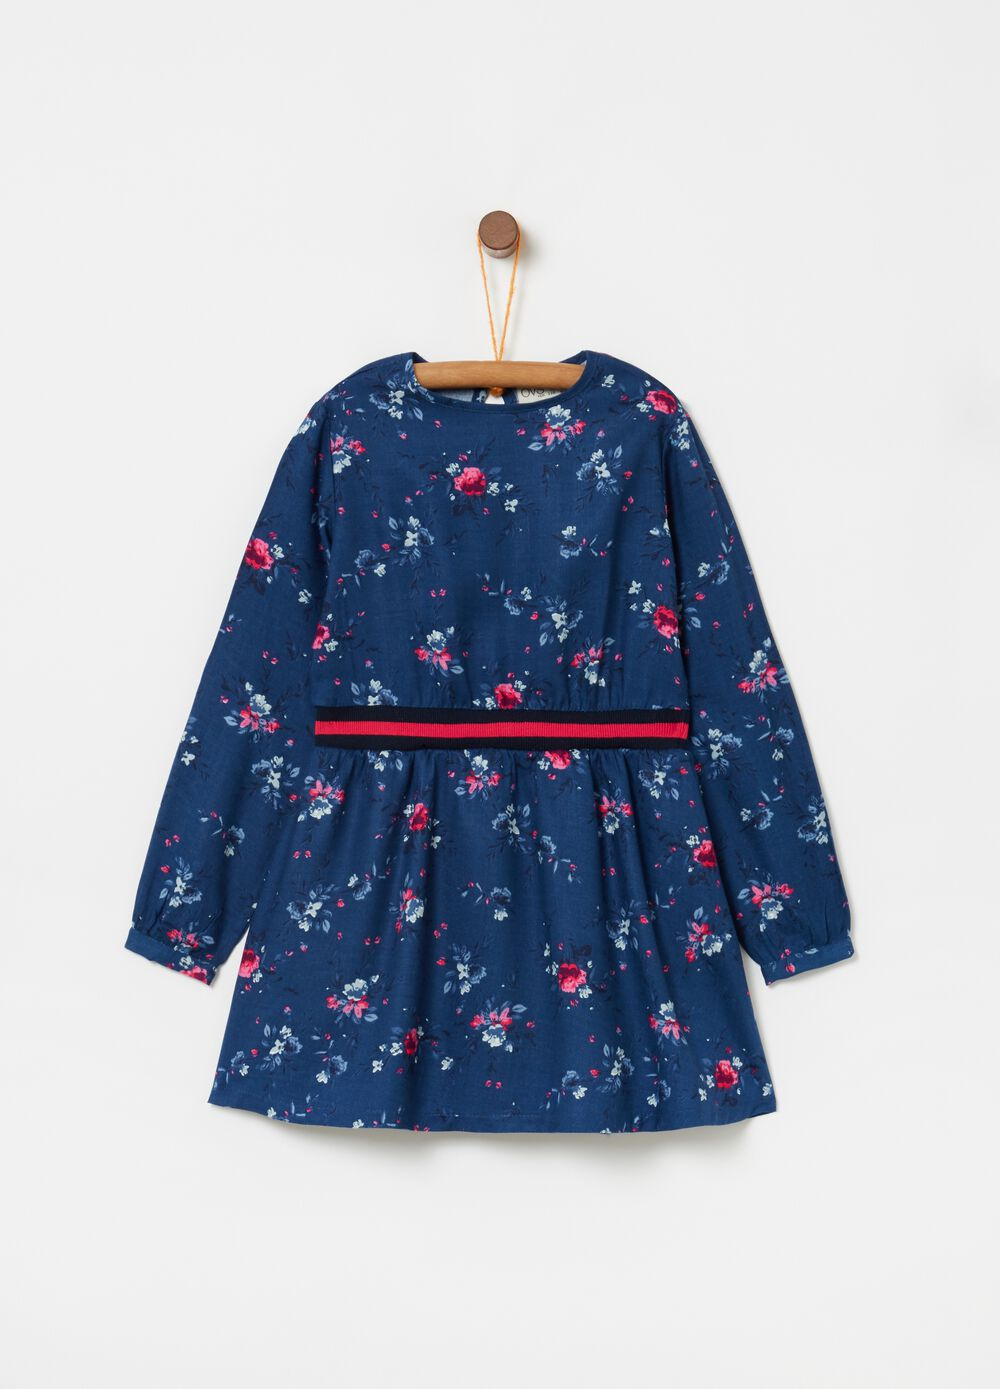 Dress with all-over floral print